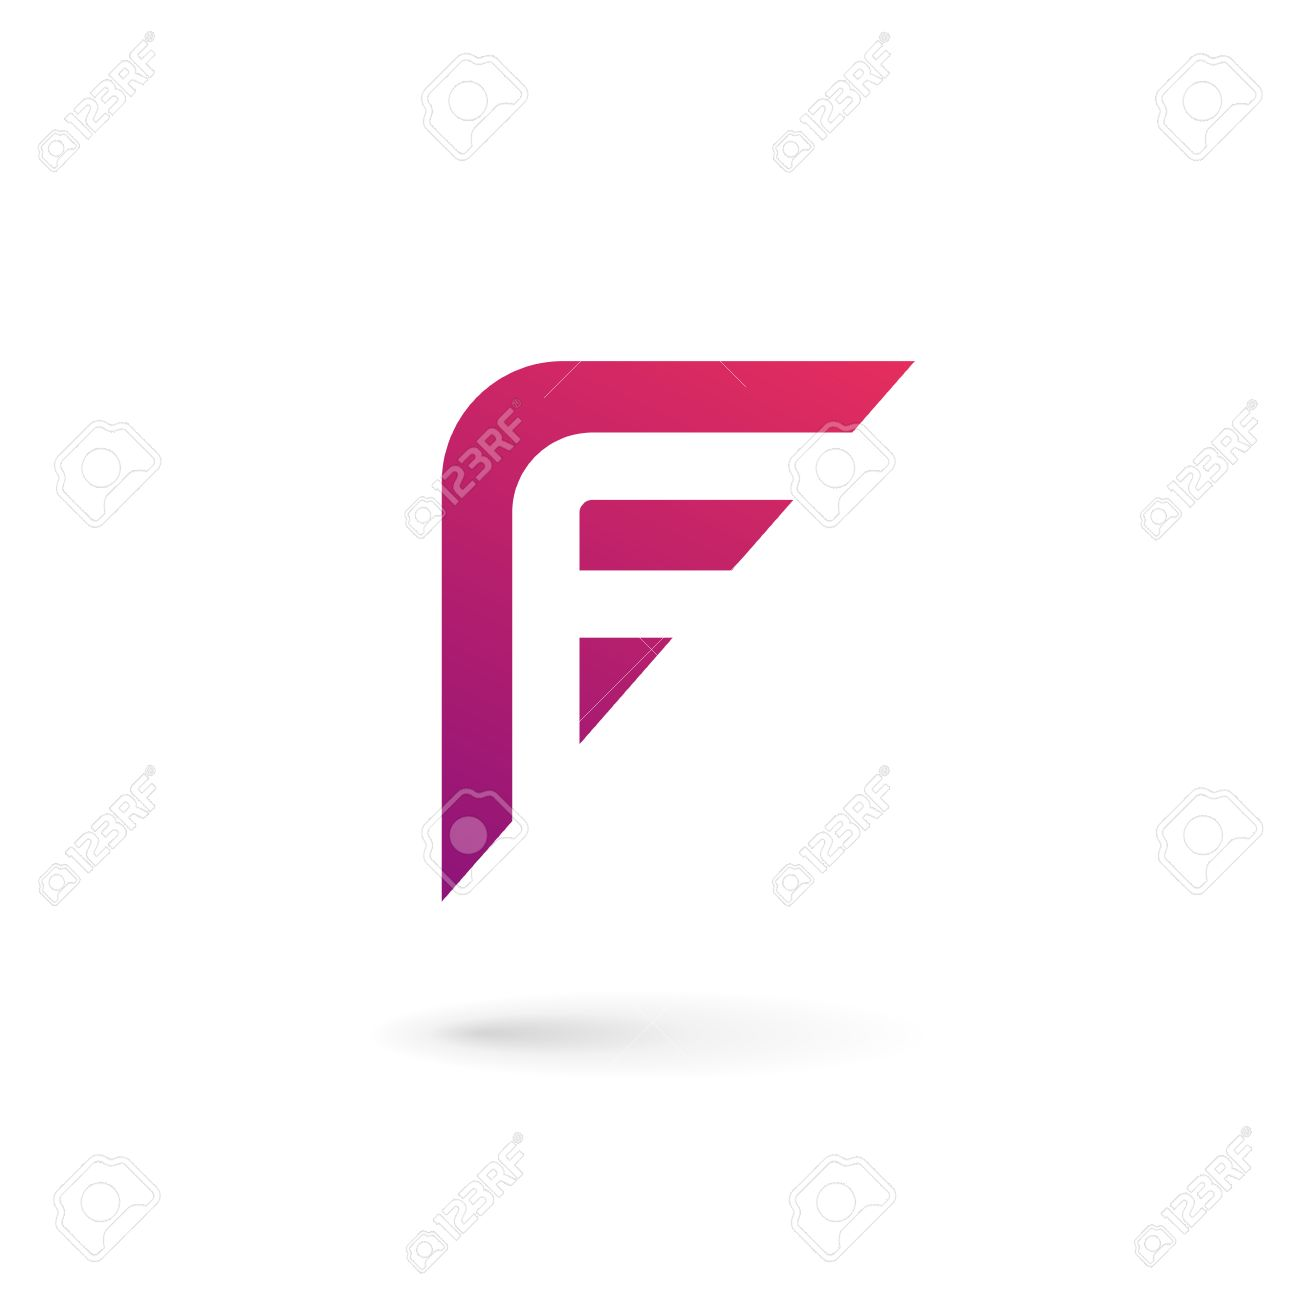 Letter f icon design template elements royalty free cliparts letter f icon design template elements stock vector 36630562 maxwellsz